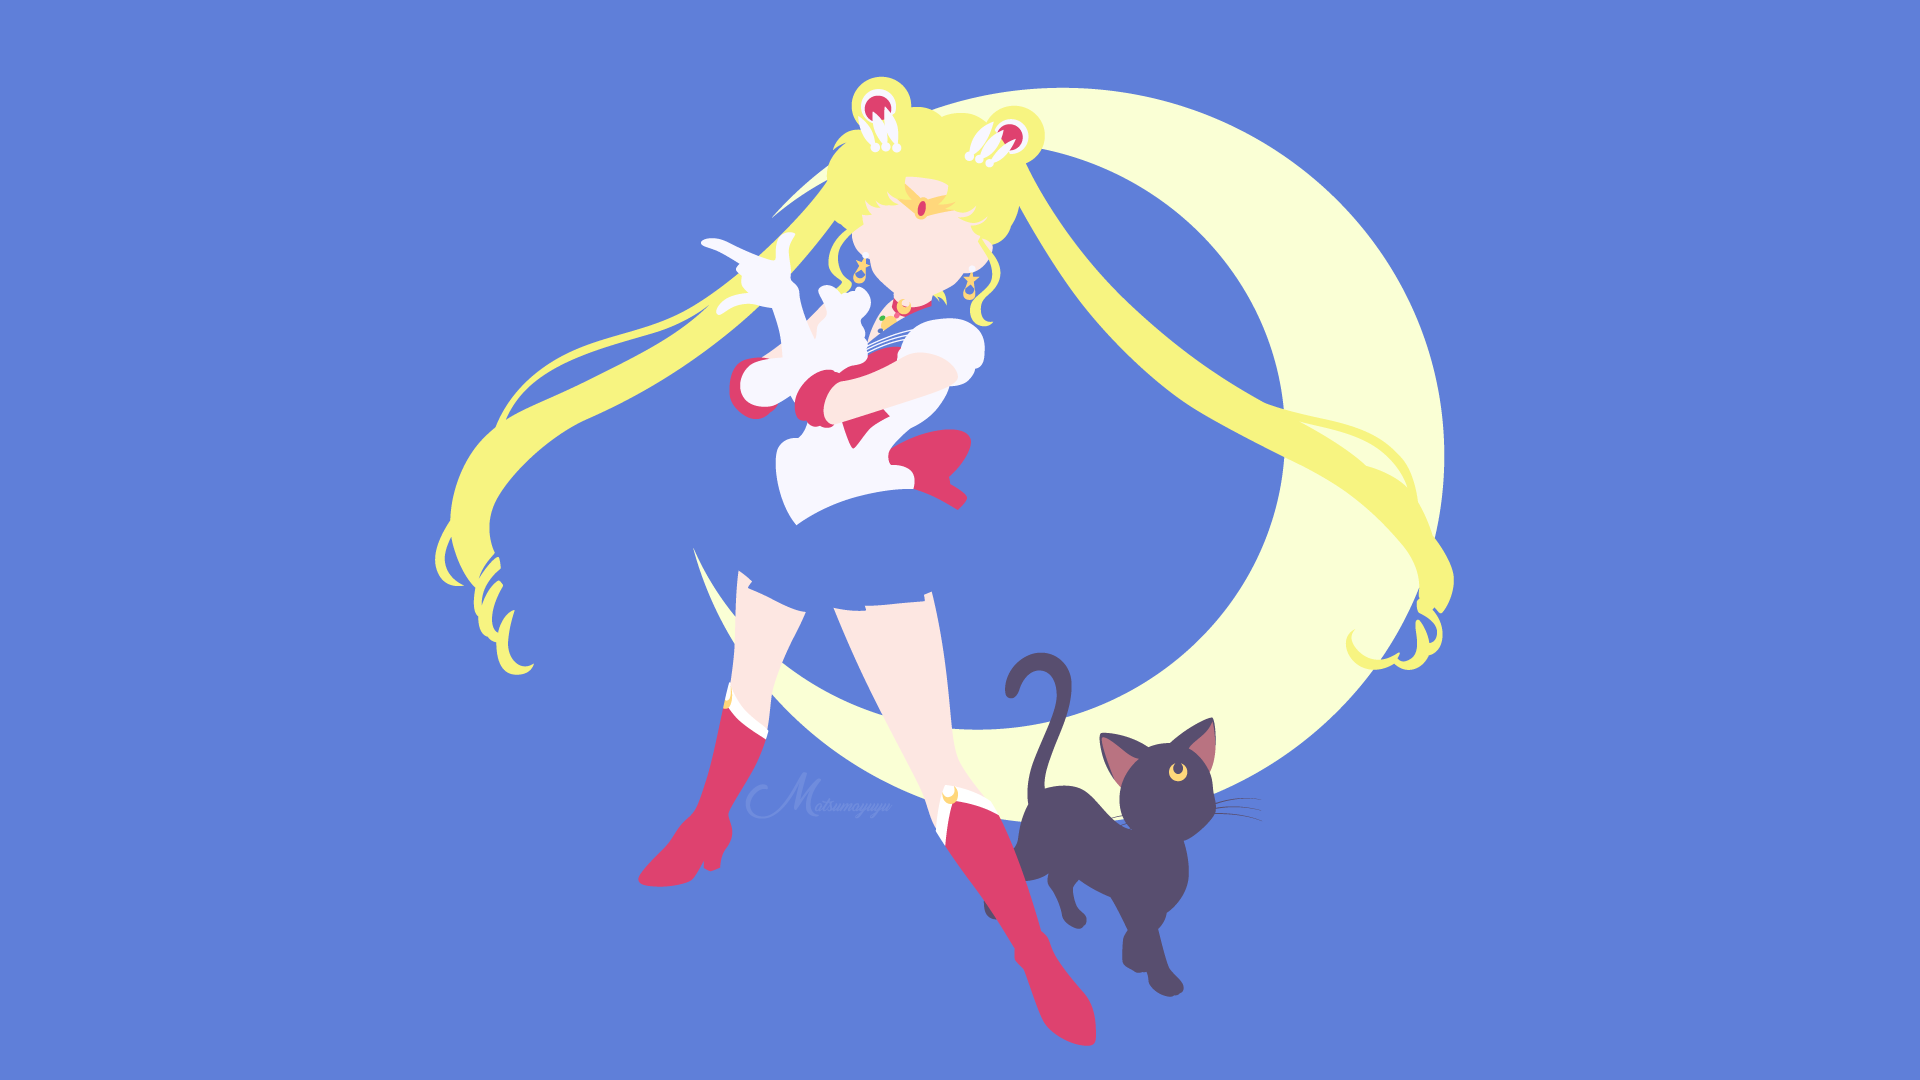 Sailor Moon Background Png - 5051033 1920x1080 Sailor Moon, Luna (Sailor Moon) wallpaper and ...